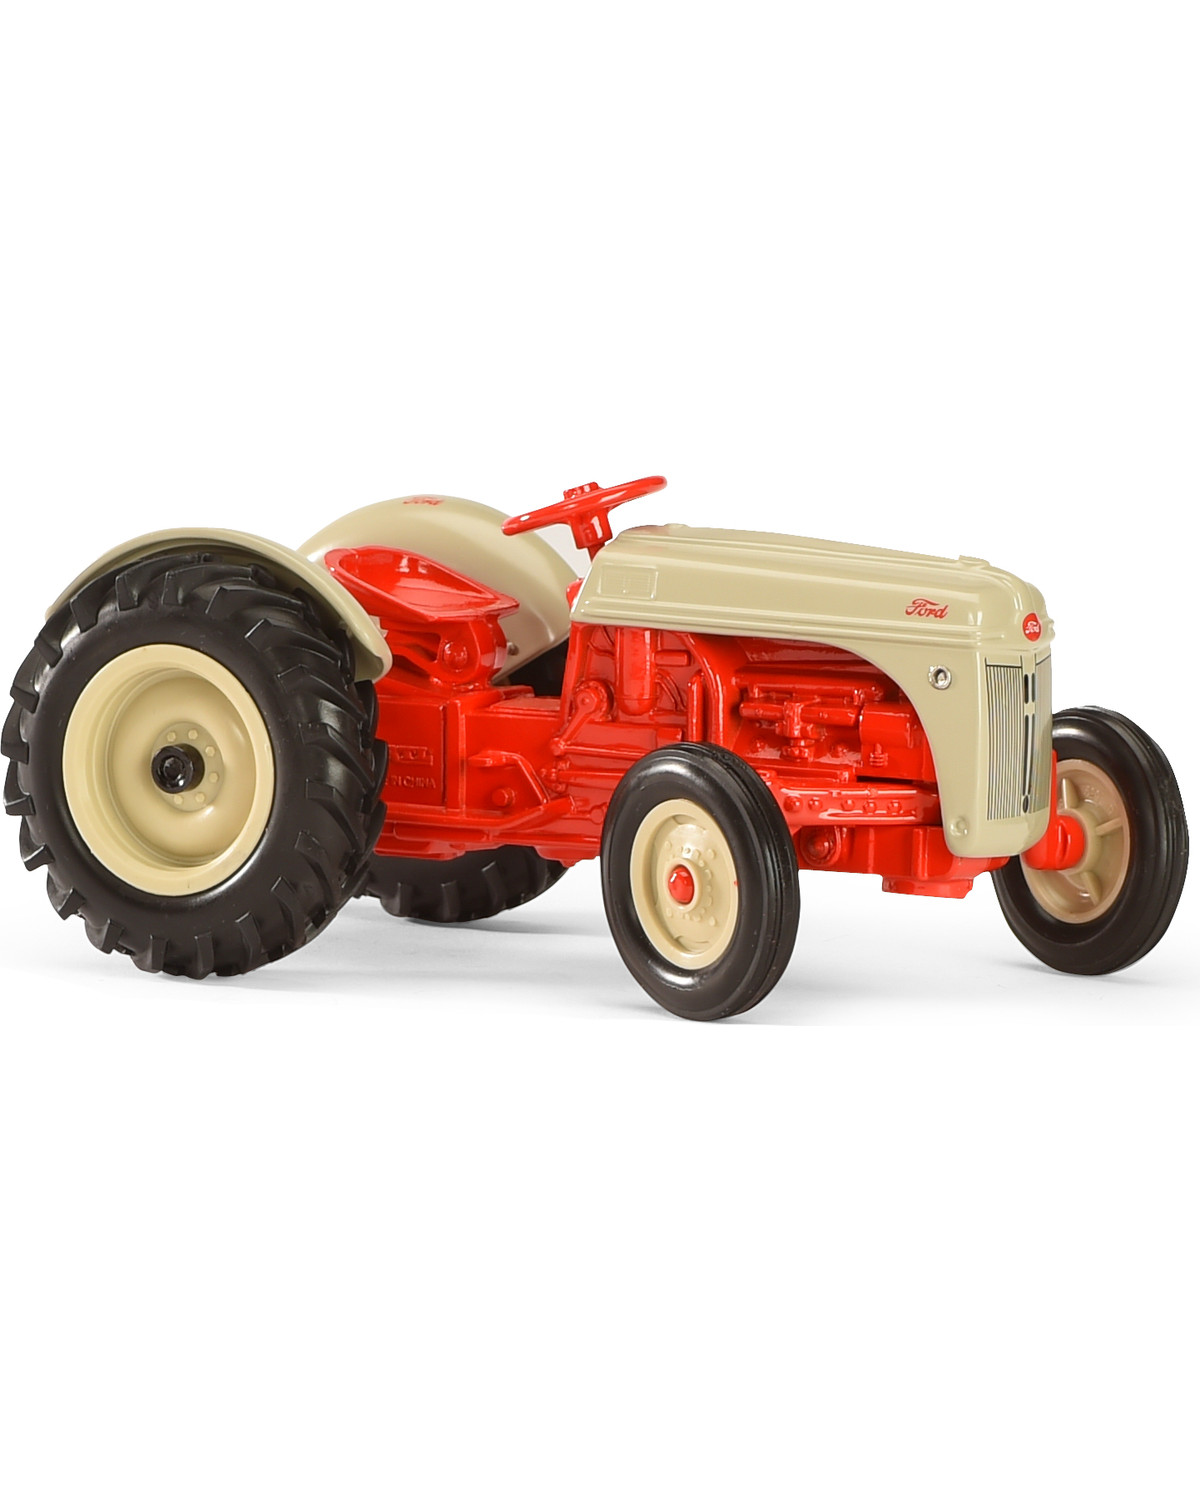 Https Email Johndeere Com >> Ford Tractor Riding Toys – Wow Blog